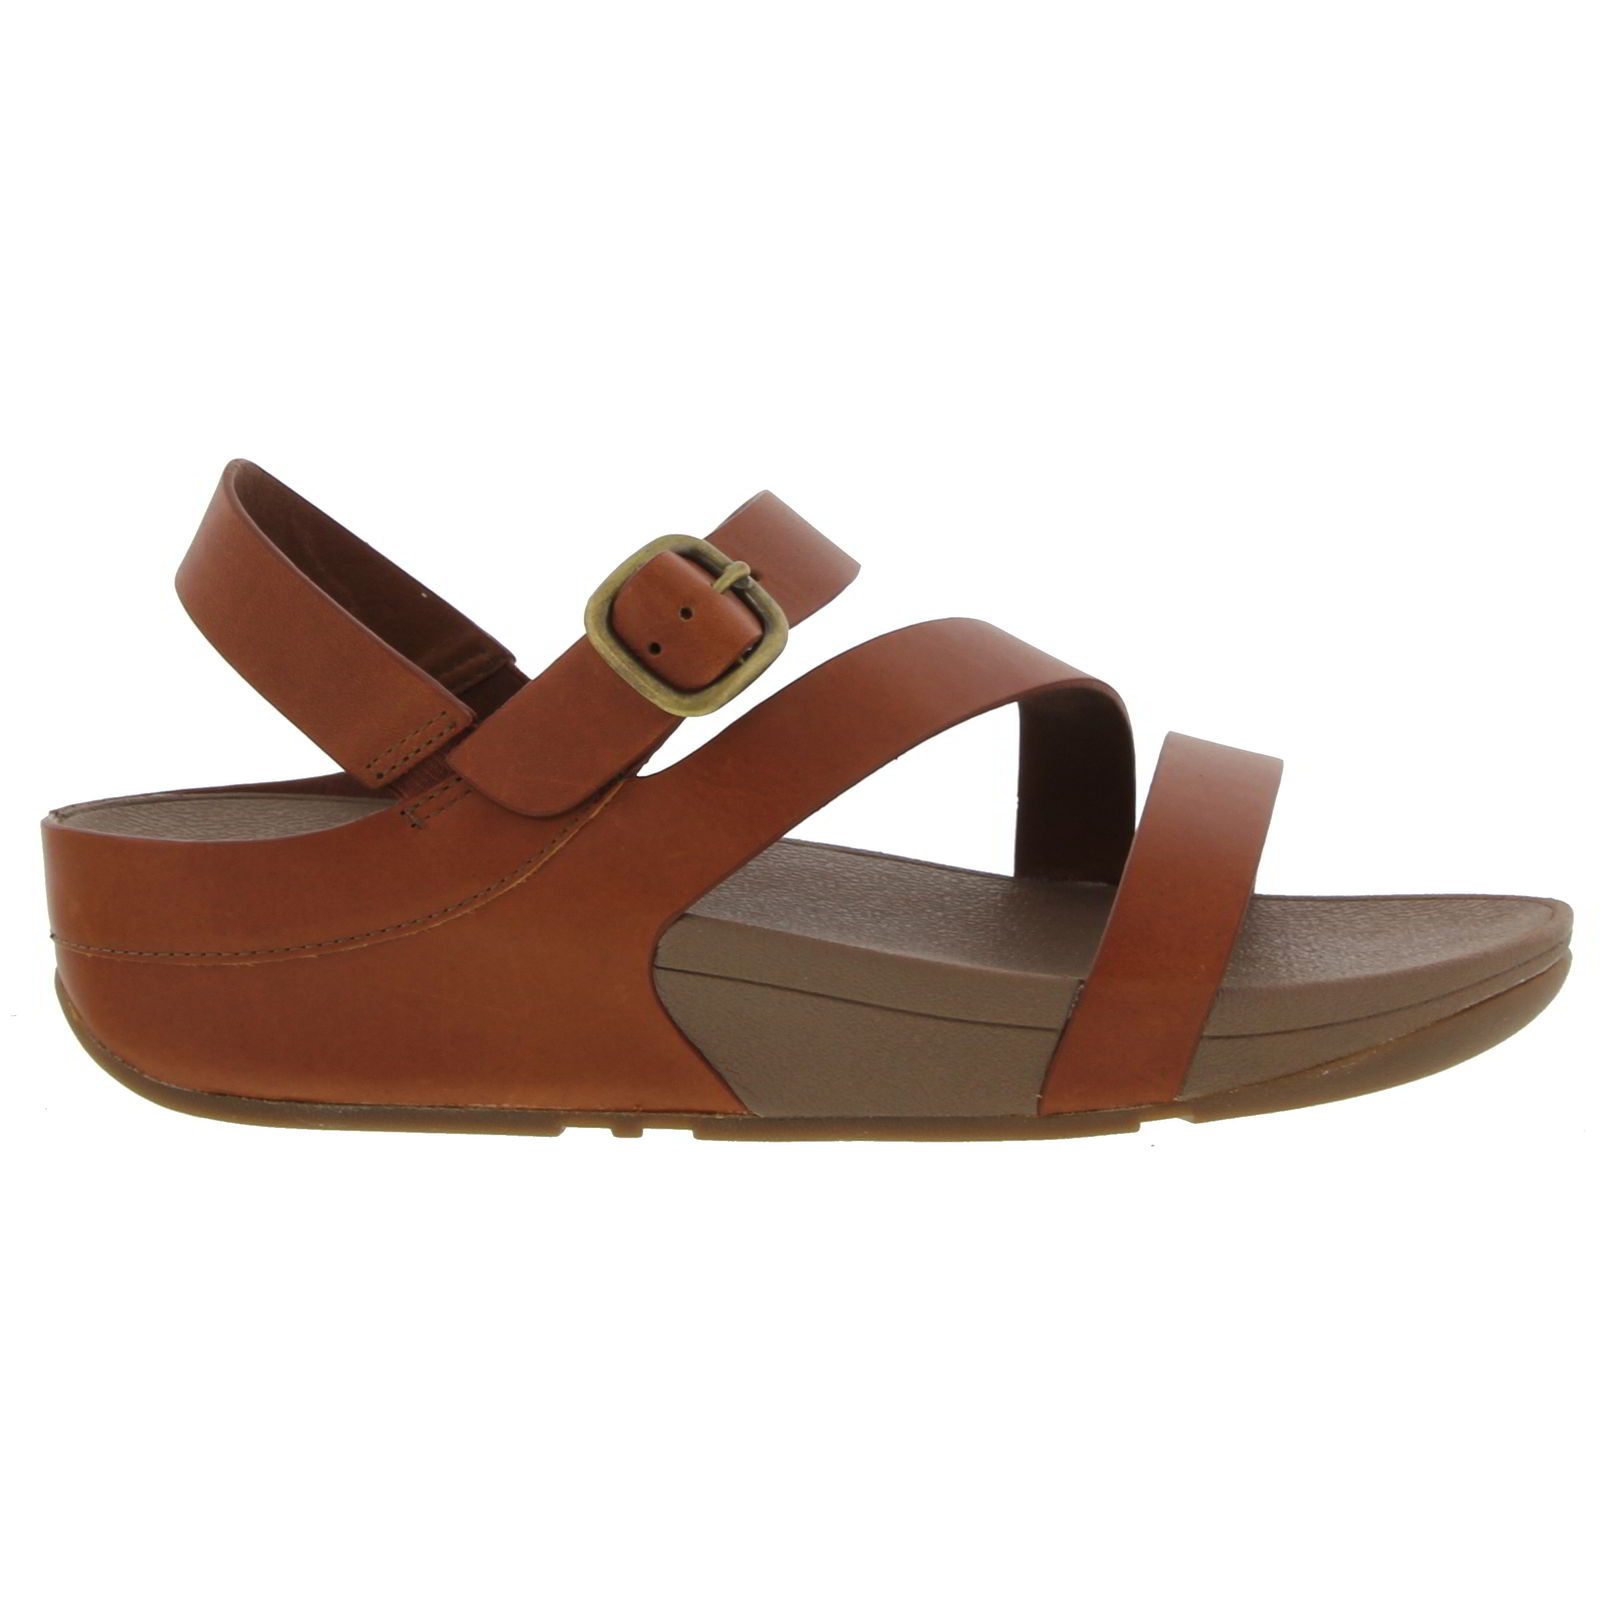 599fbd37cef7e4 Details about FitFlop The Skinny Z-Cross Womens Leather Sandals Size 5-8